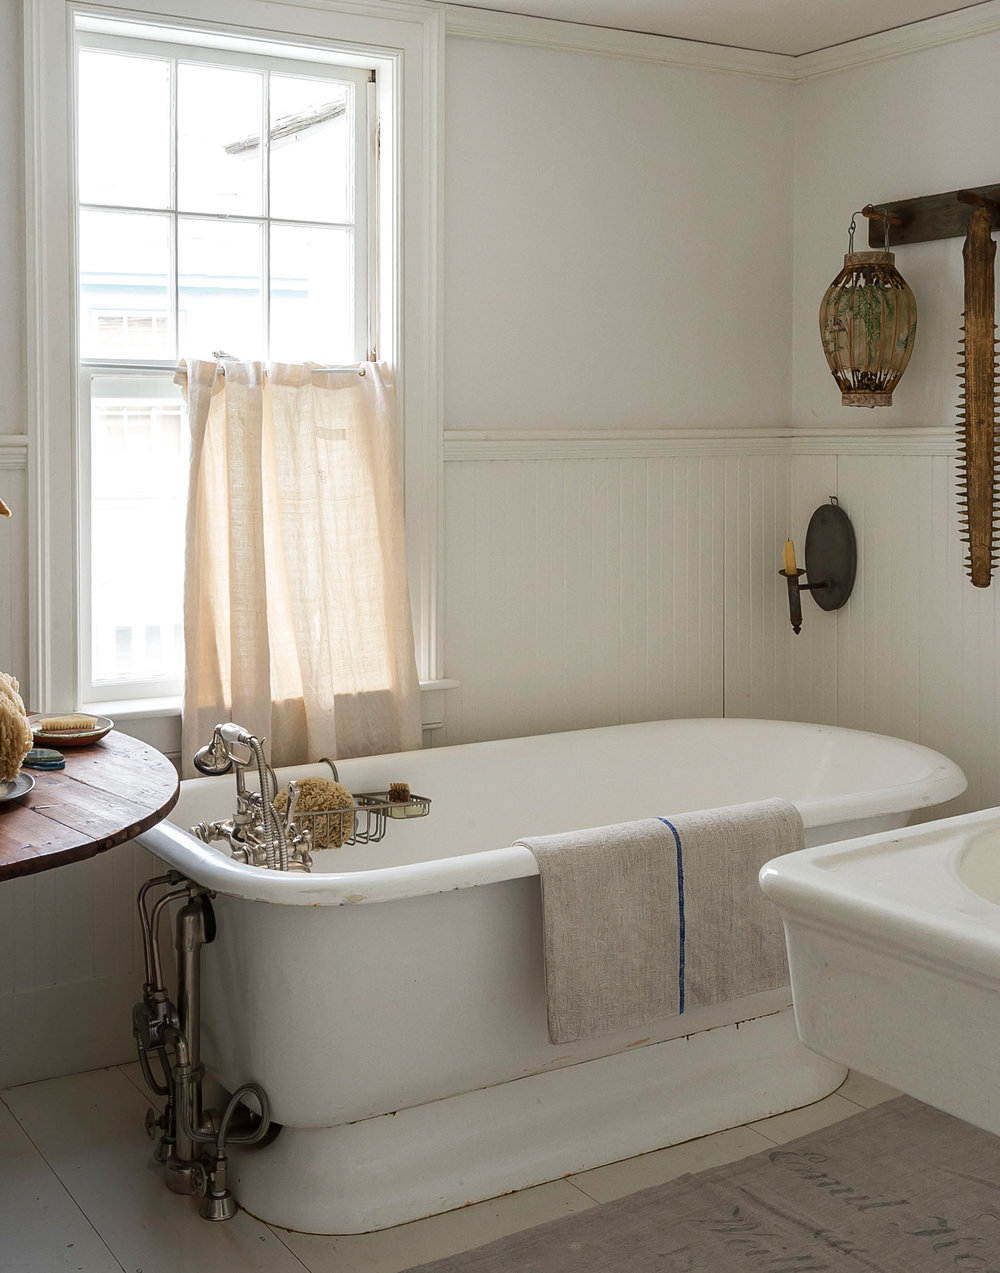 John-Derian-Bathroom-tub.jpg